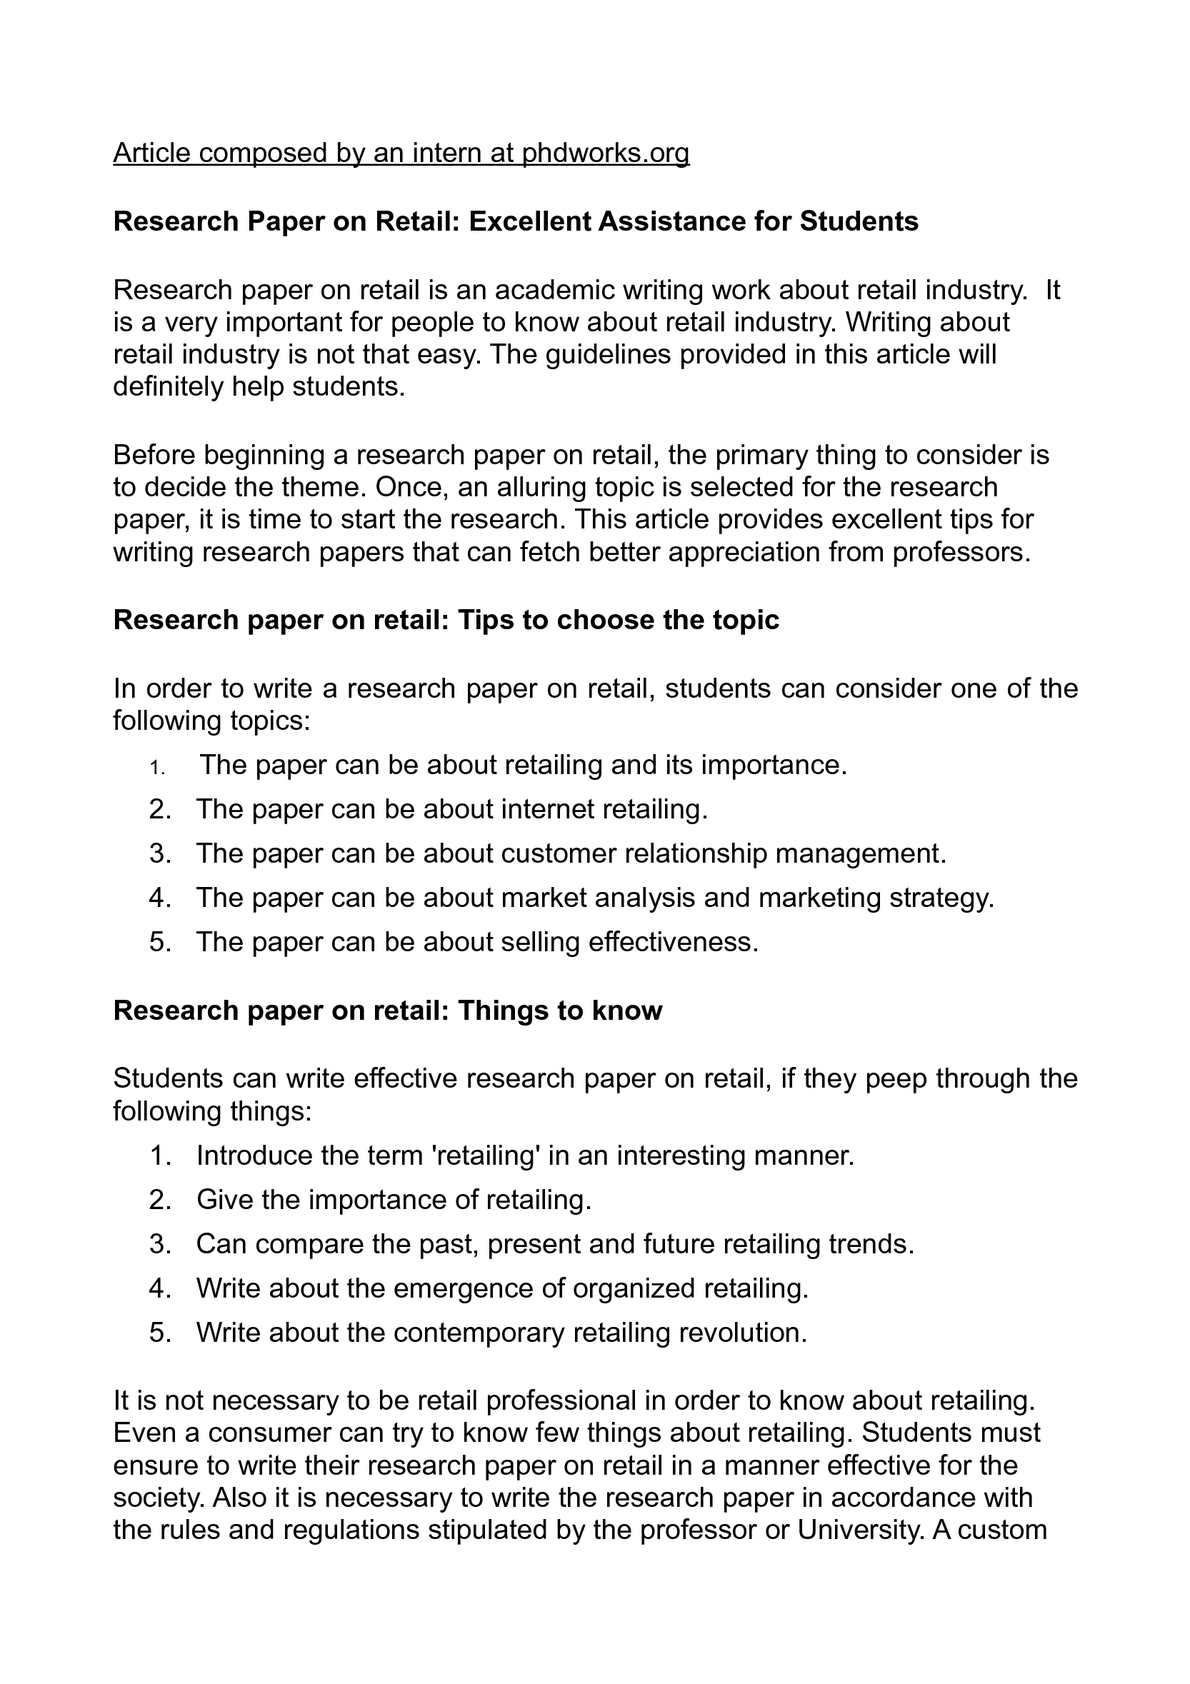 009 Research Paper Order Of Writing Impressive A Correct Sequence Steps For Full